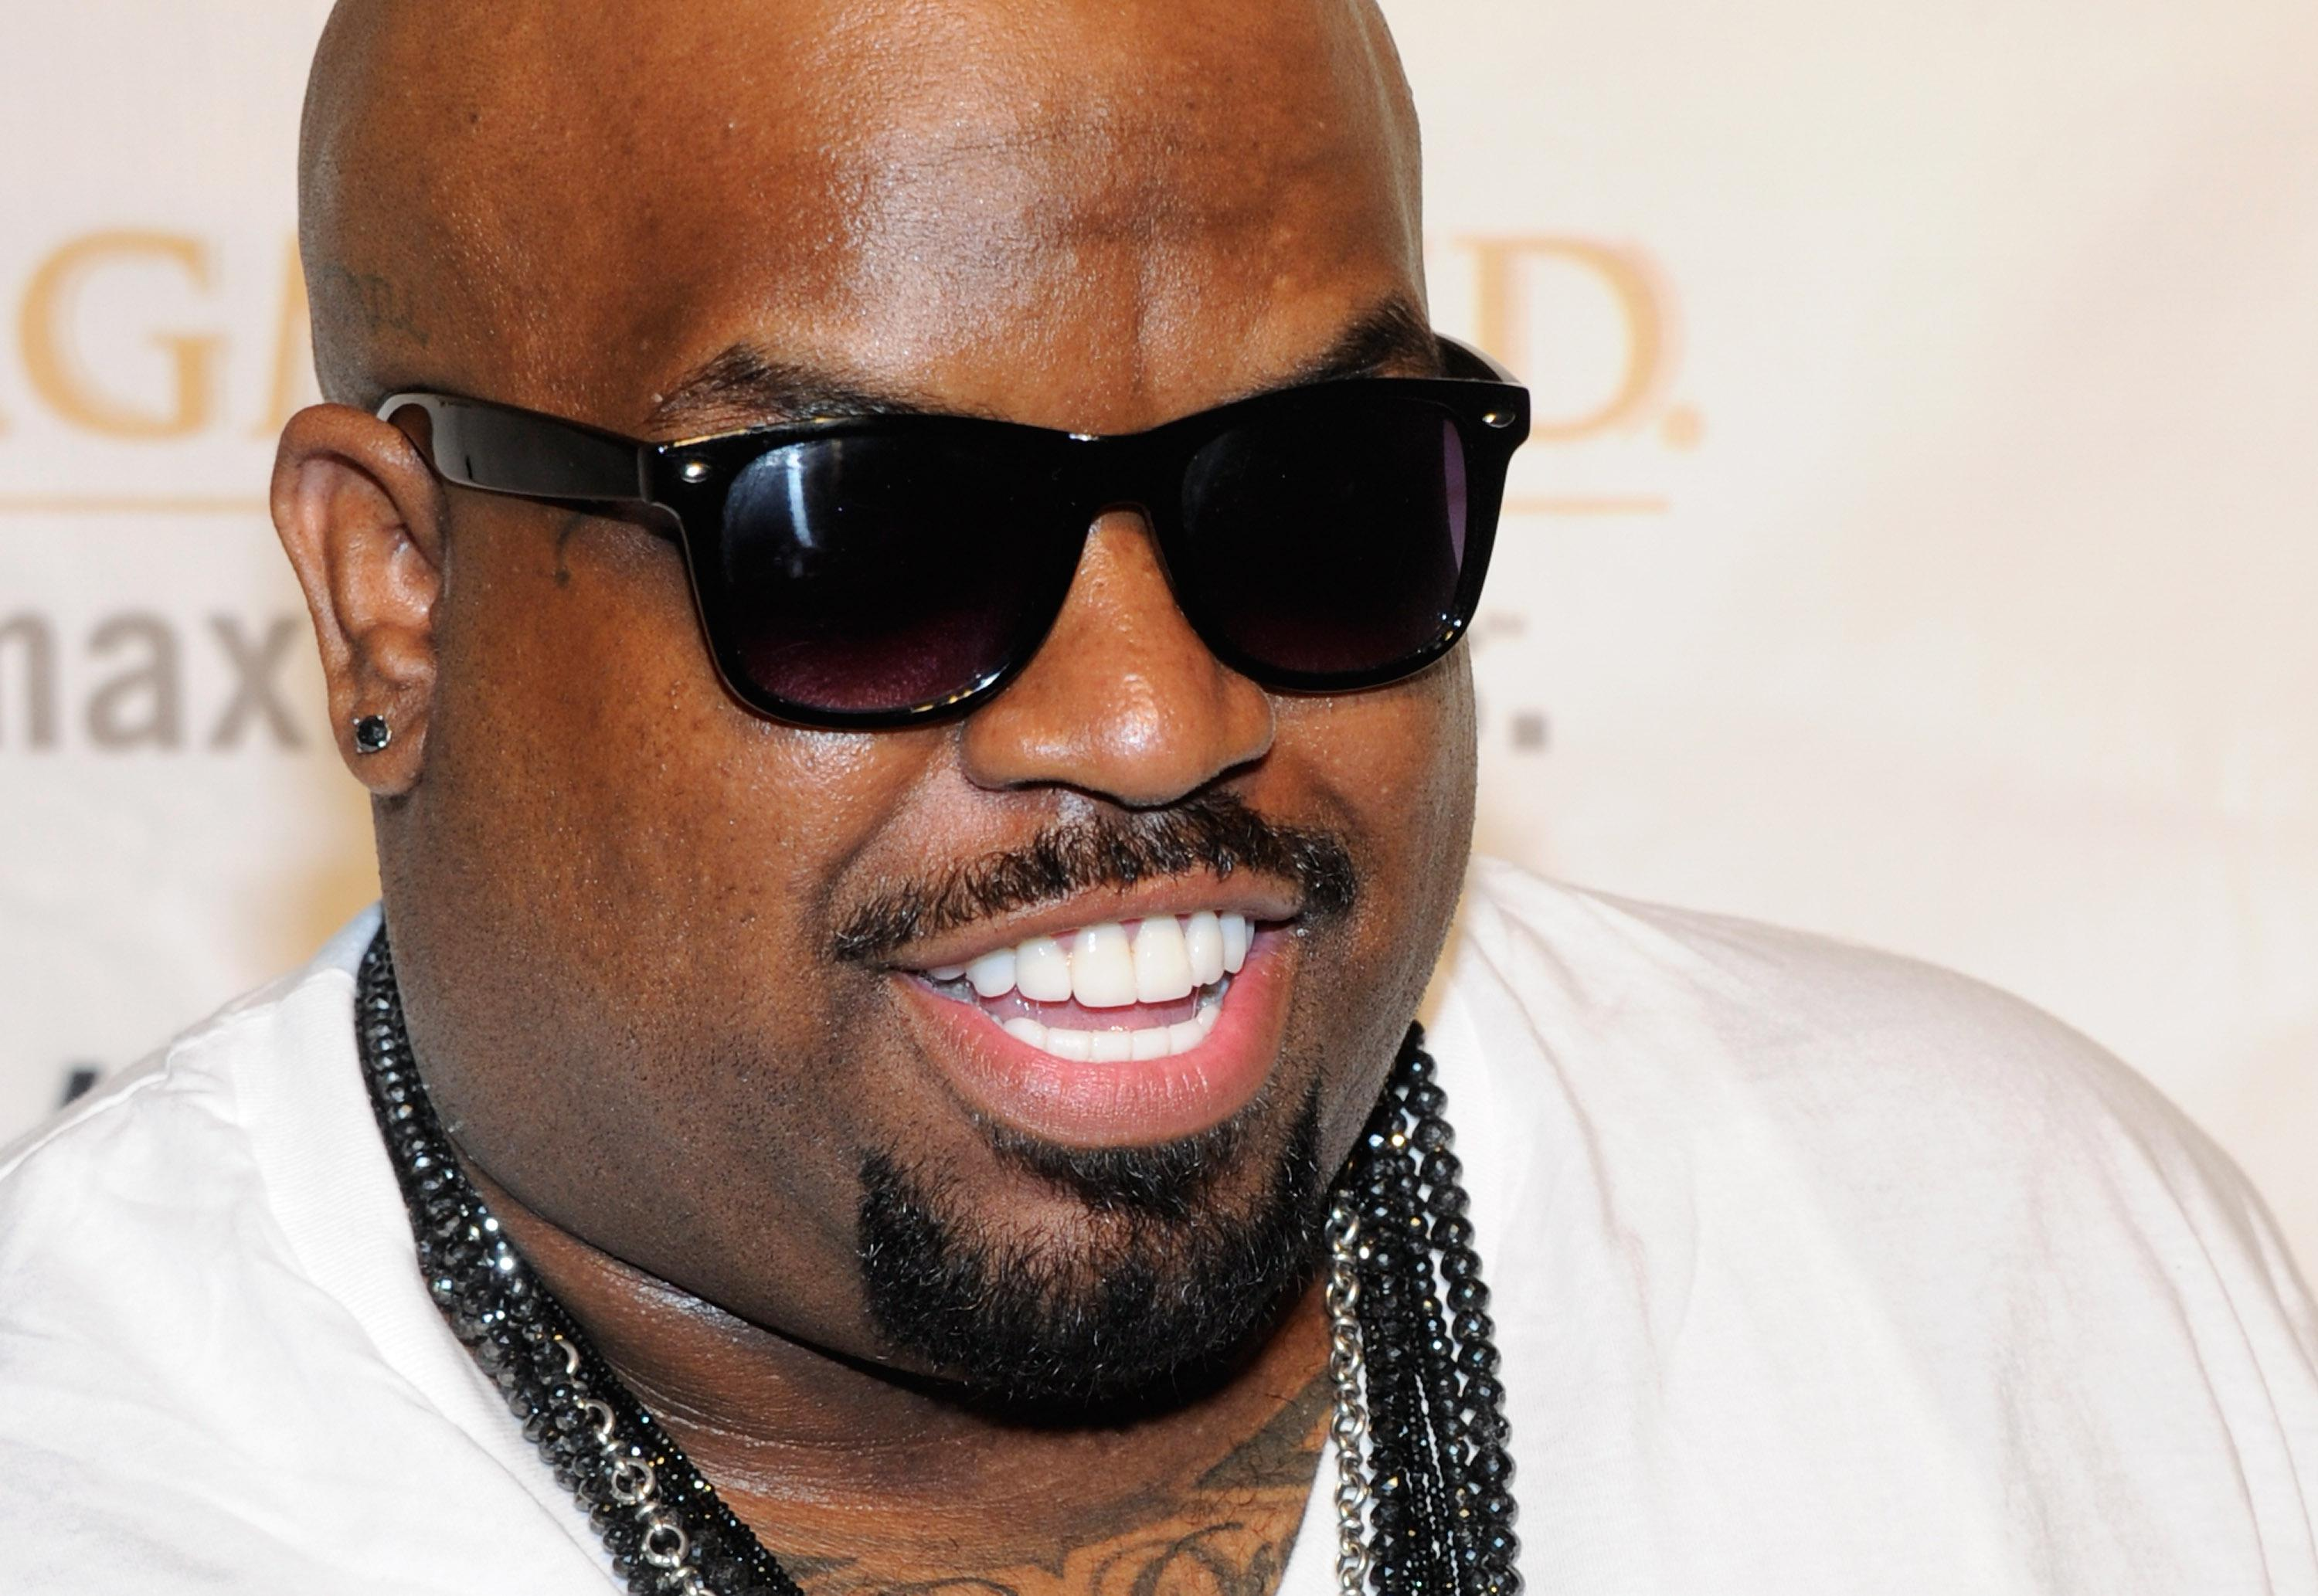 Cee Lo Green Performs During Jack Daniel's Launch Event At Wet Republic At MGM Grand